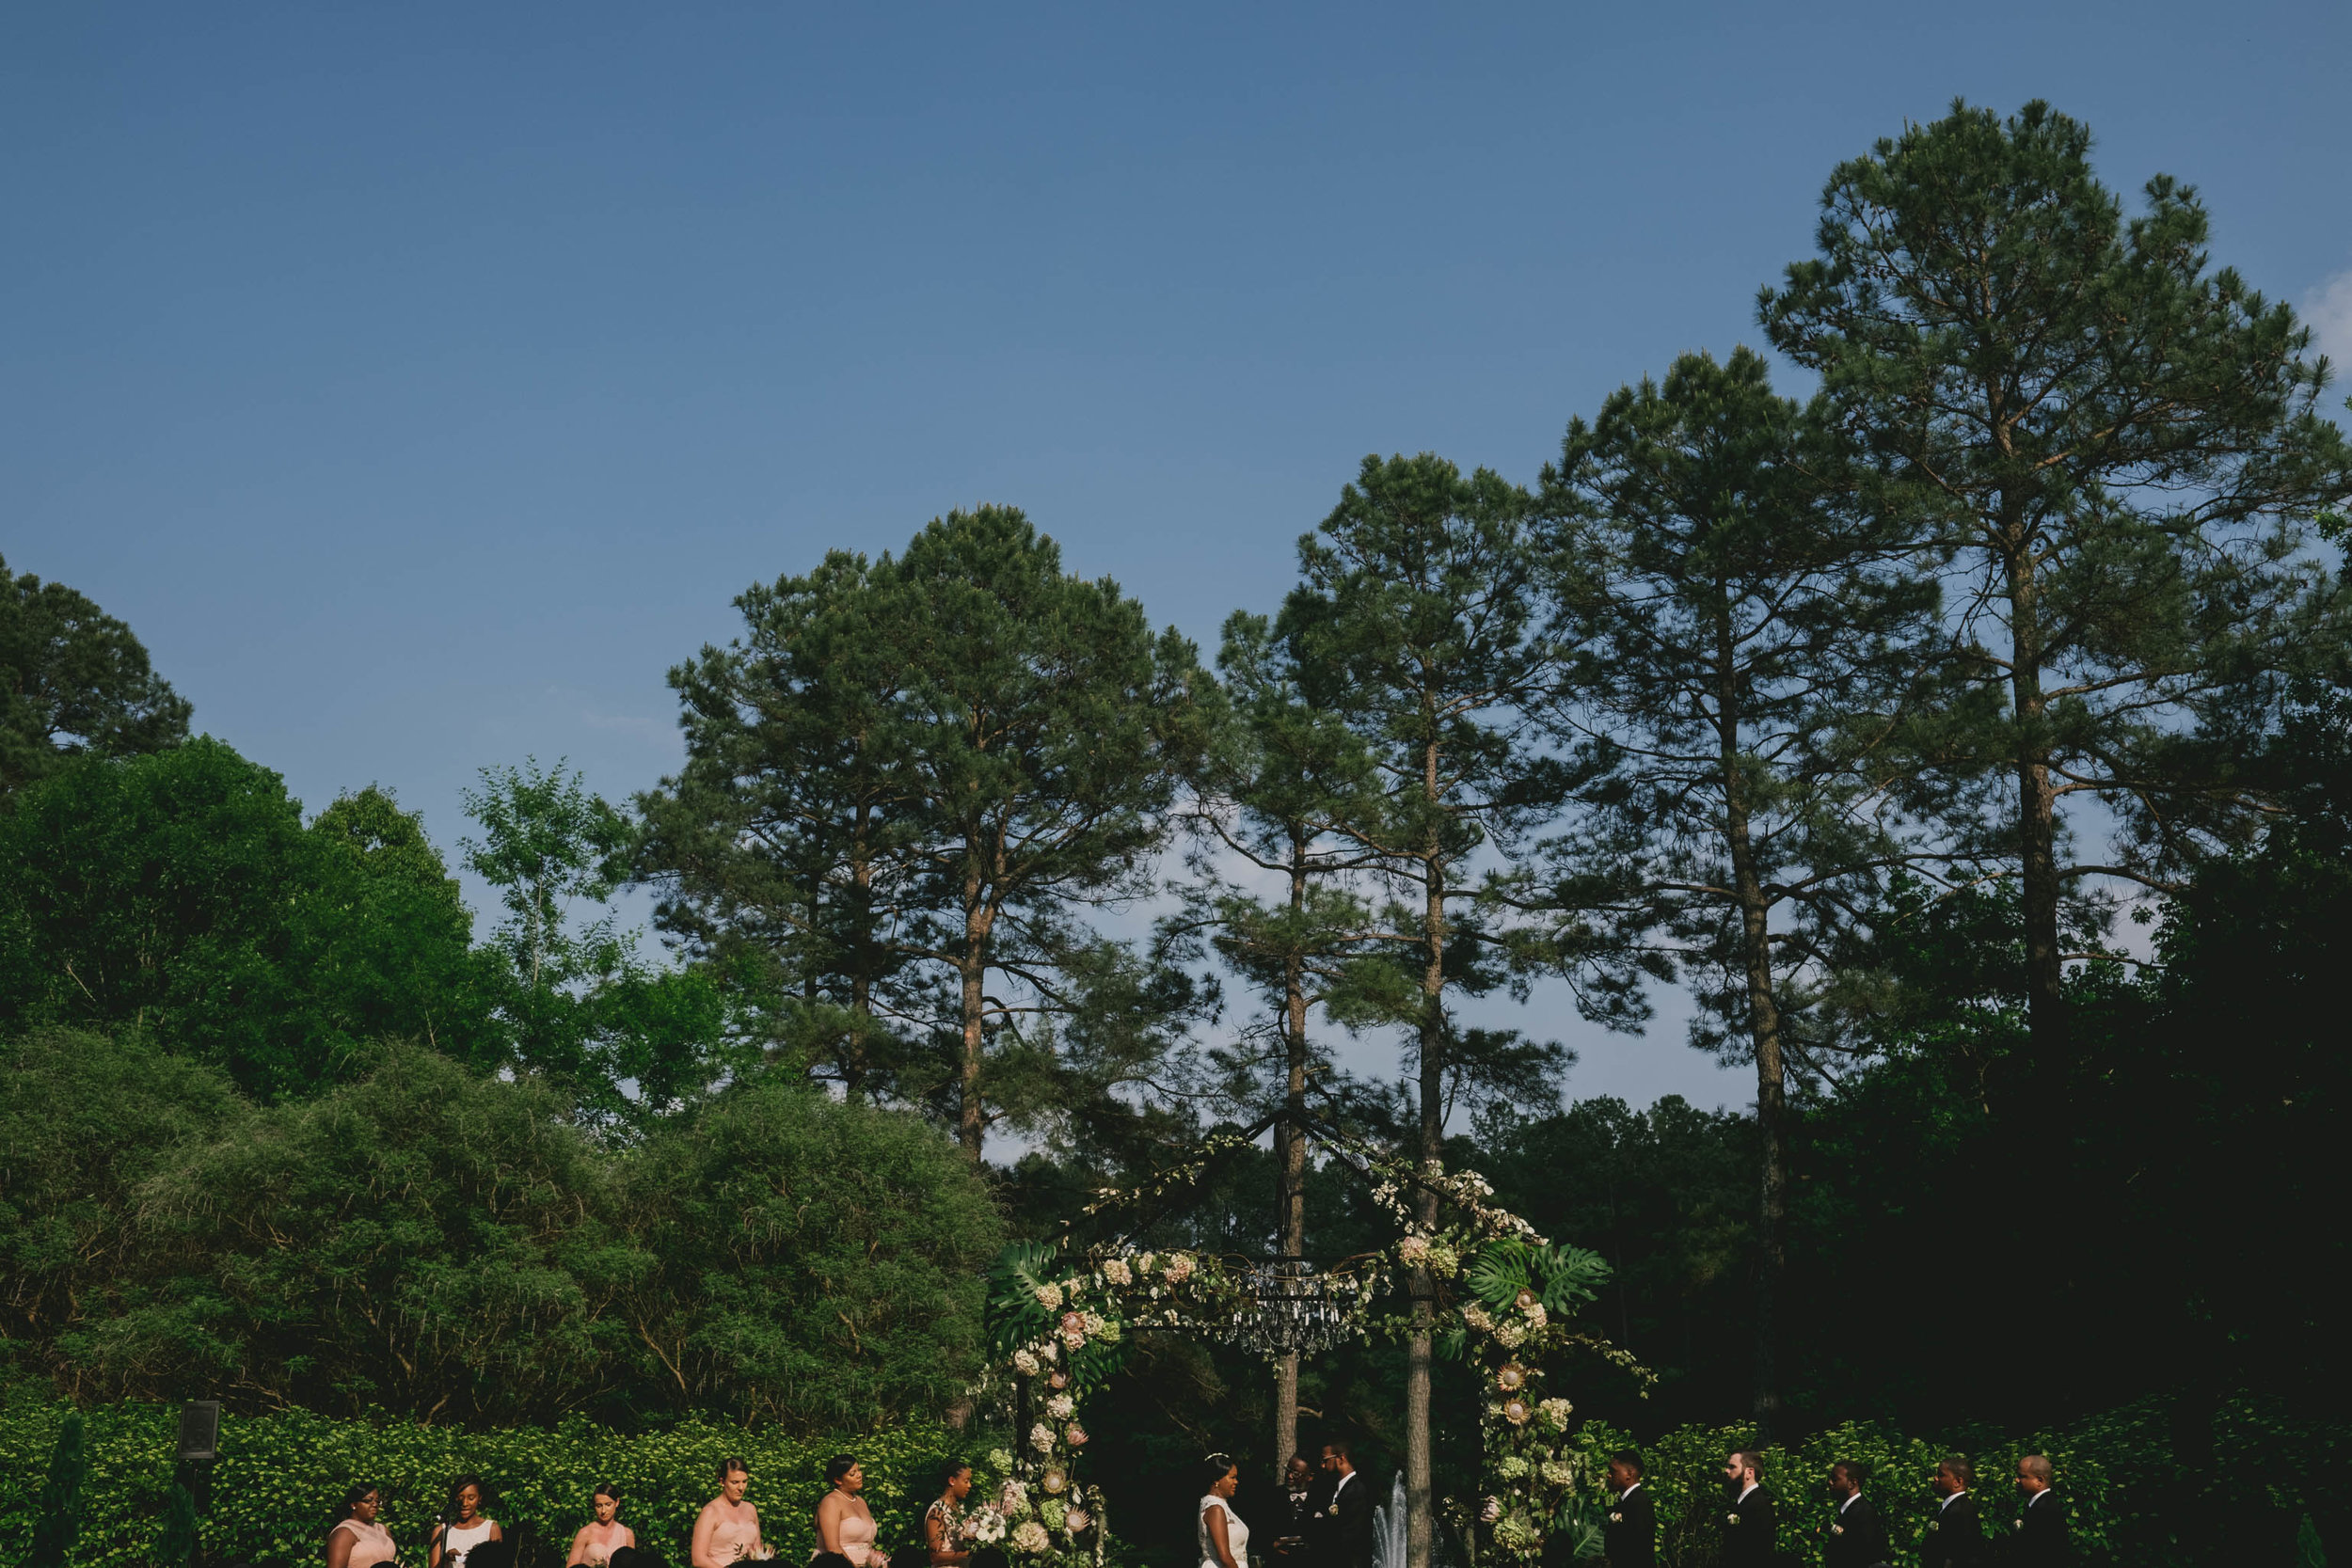 The wedding party preparing for the recessional at this Umstead Hotel wedding